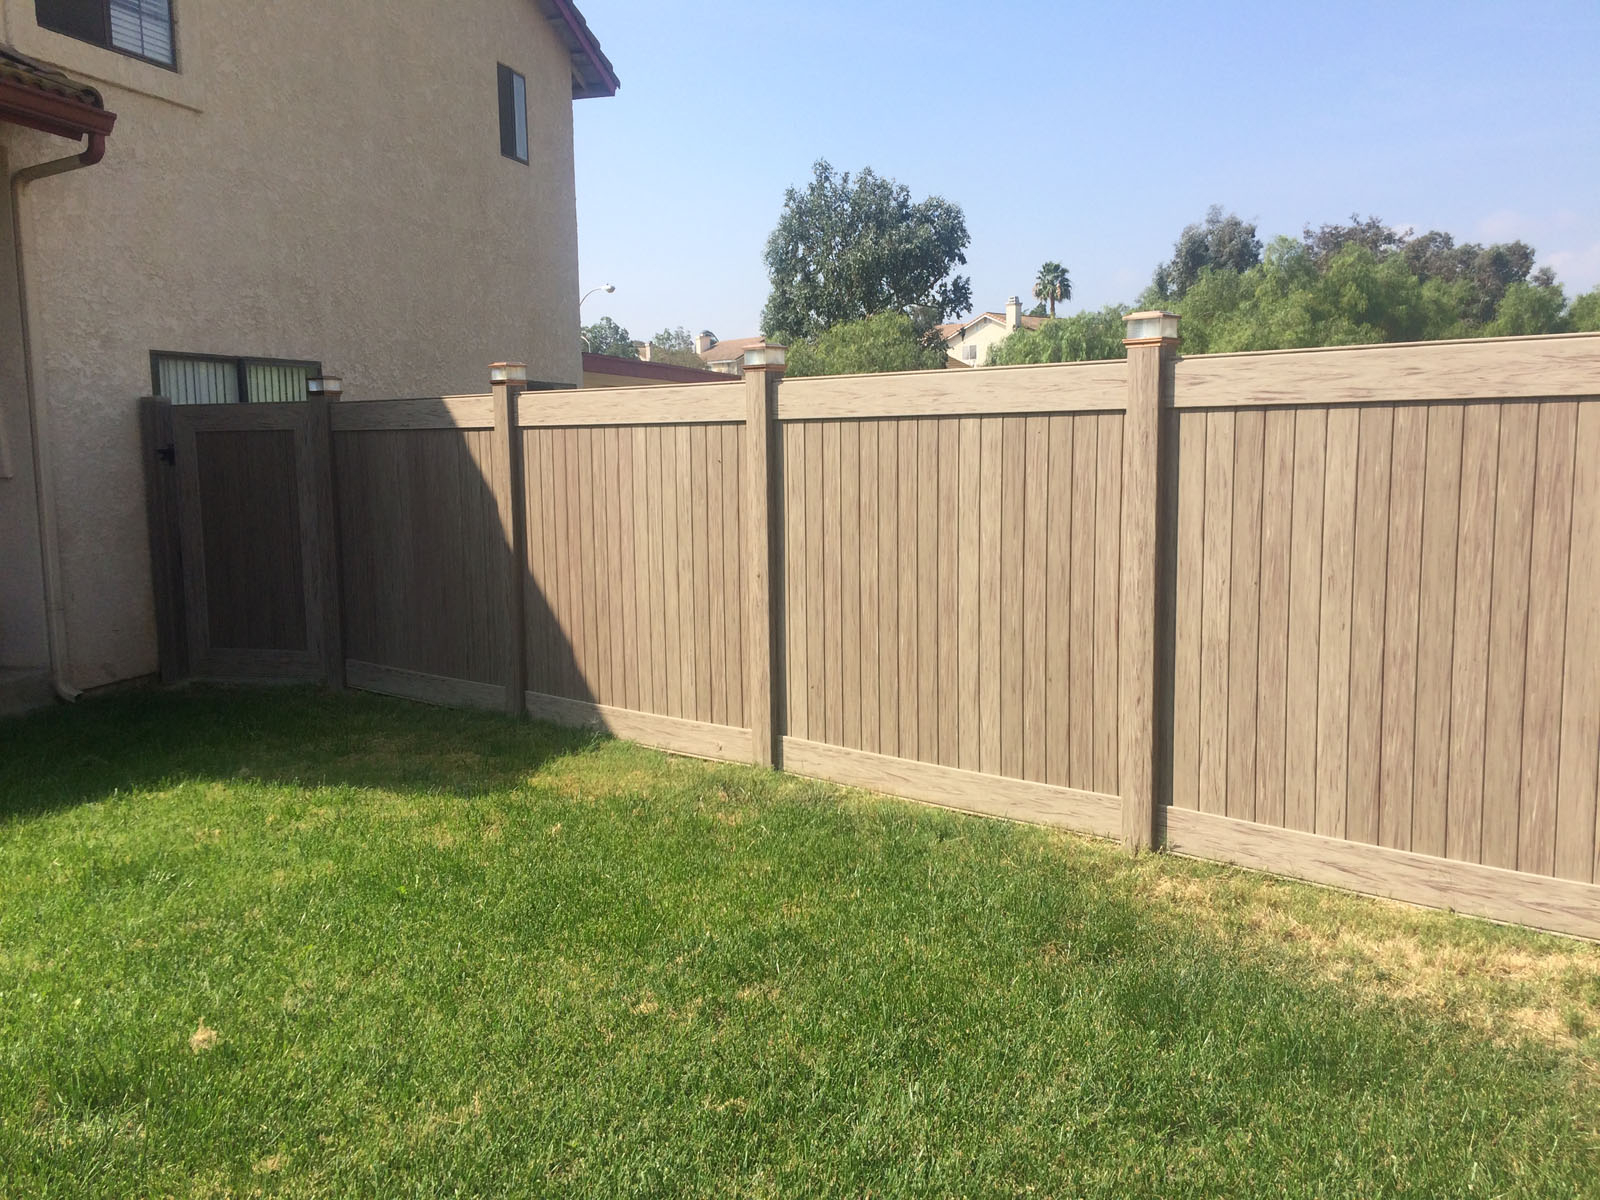 Fence Design Orange County Chain Vinyl Fencing Riverside Link with regard to dimensions 1600 X 1200